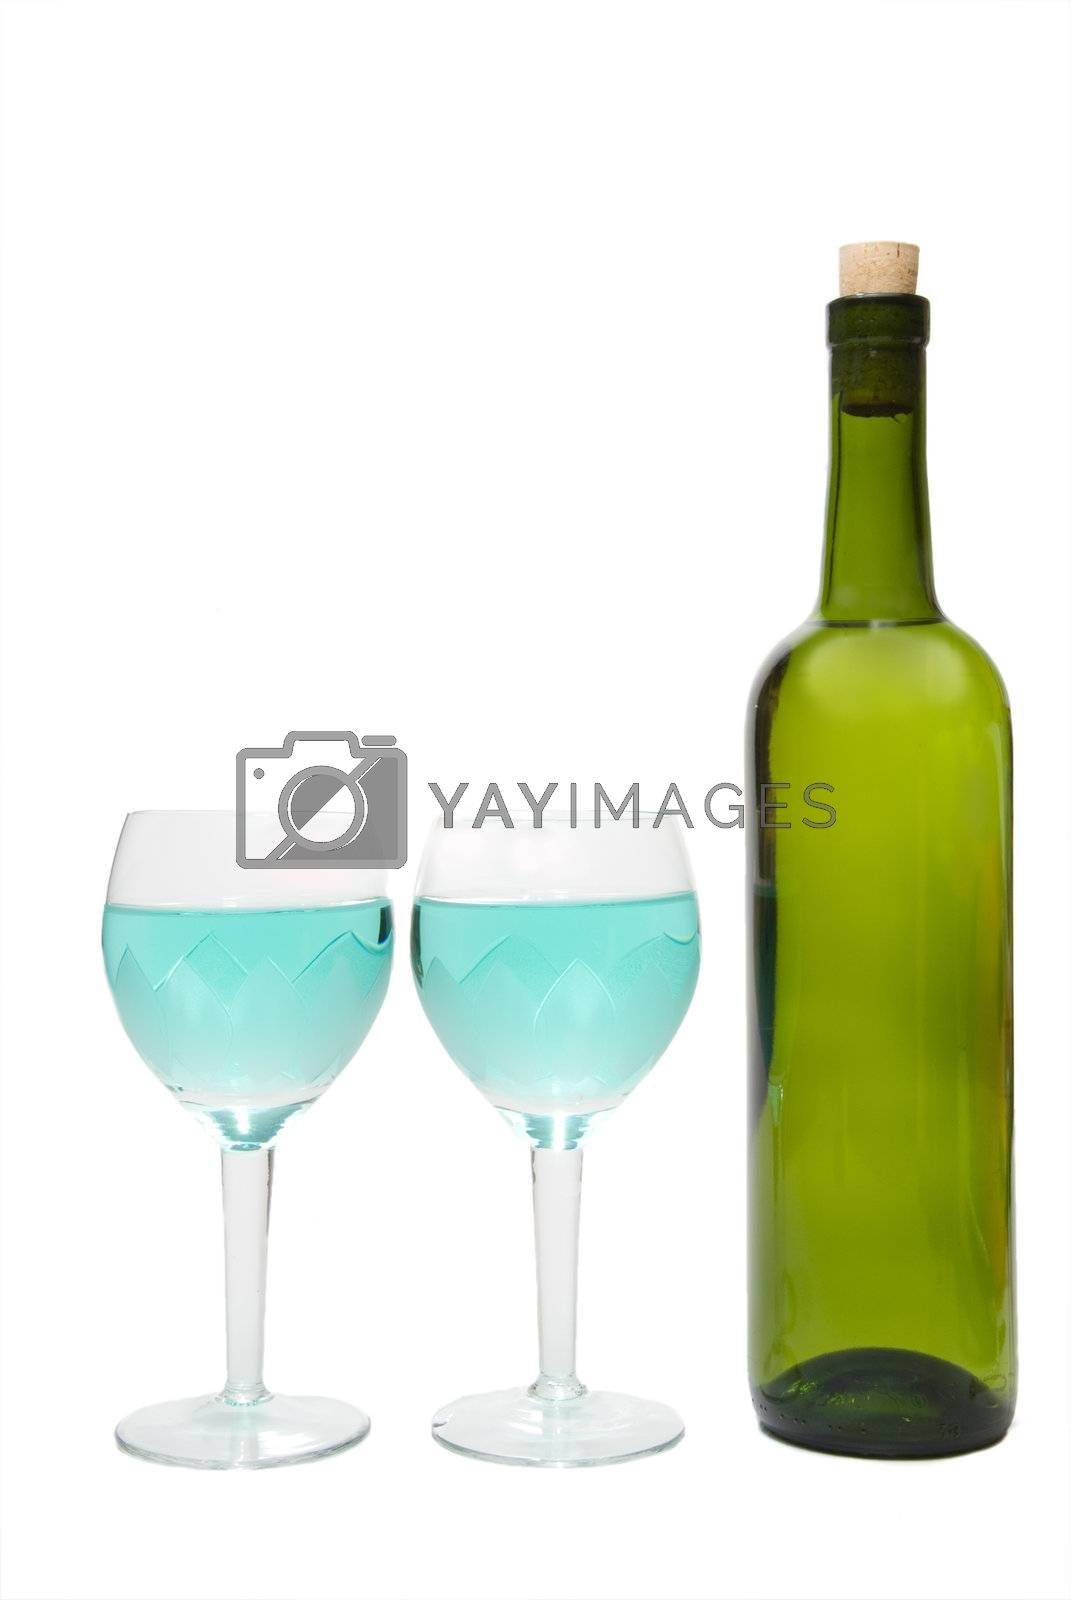 Wine in glasses and a wine bottle.